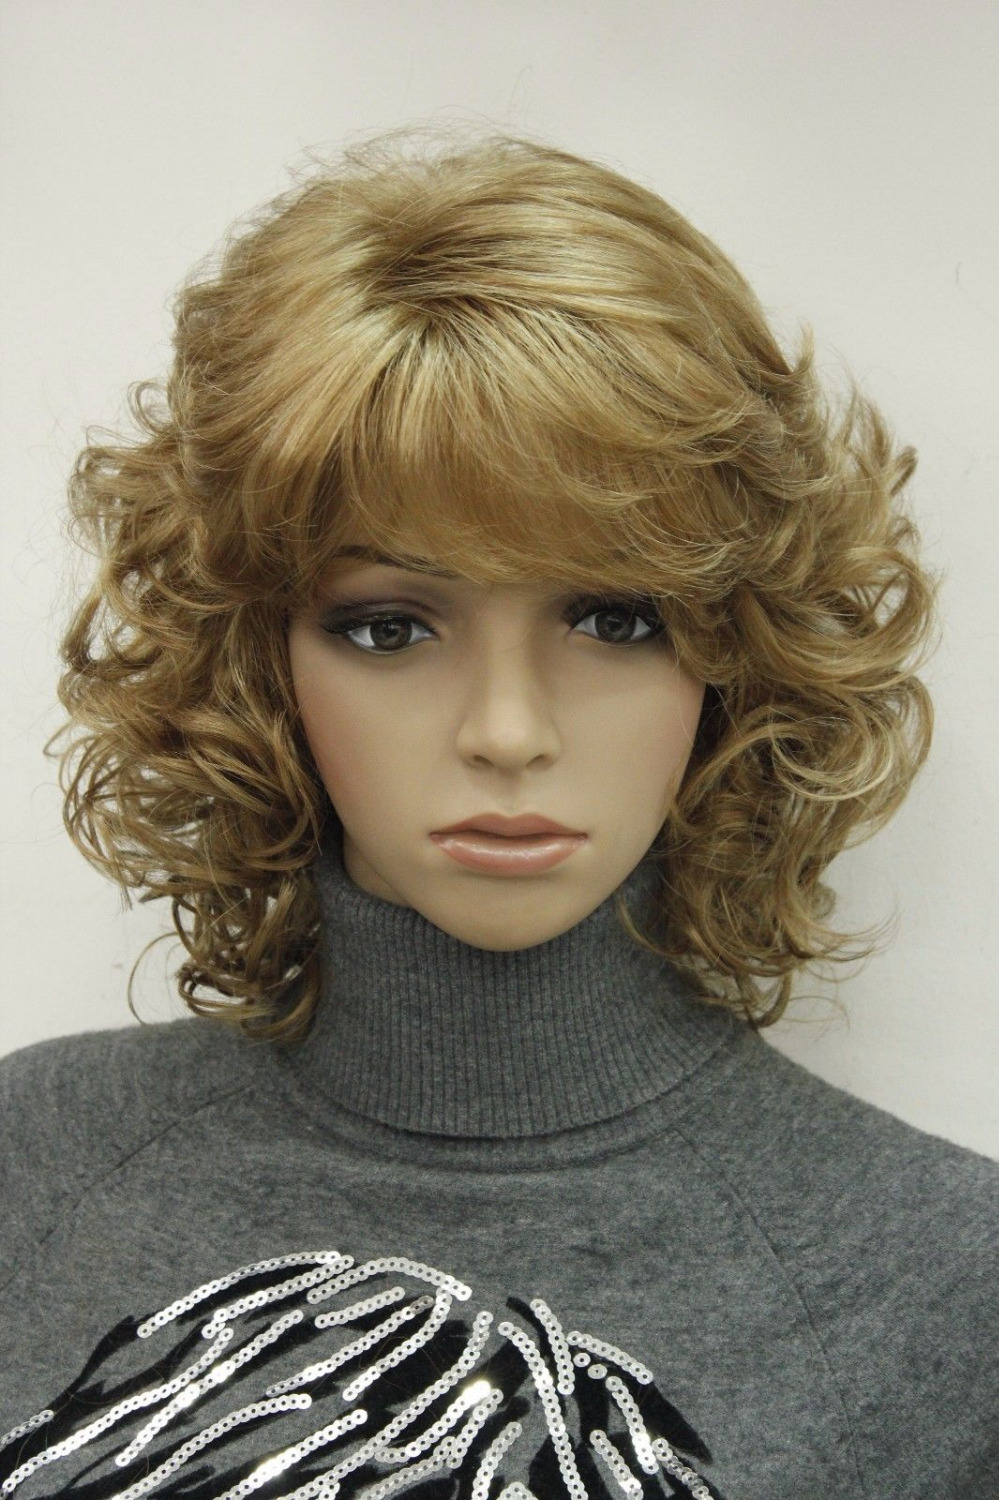 shun Fashion Light Strawberry Blonde Short Curly Women Synthetic Fluffy Wig Hc-TLD209 26% discount(China (Mainland))